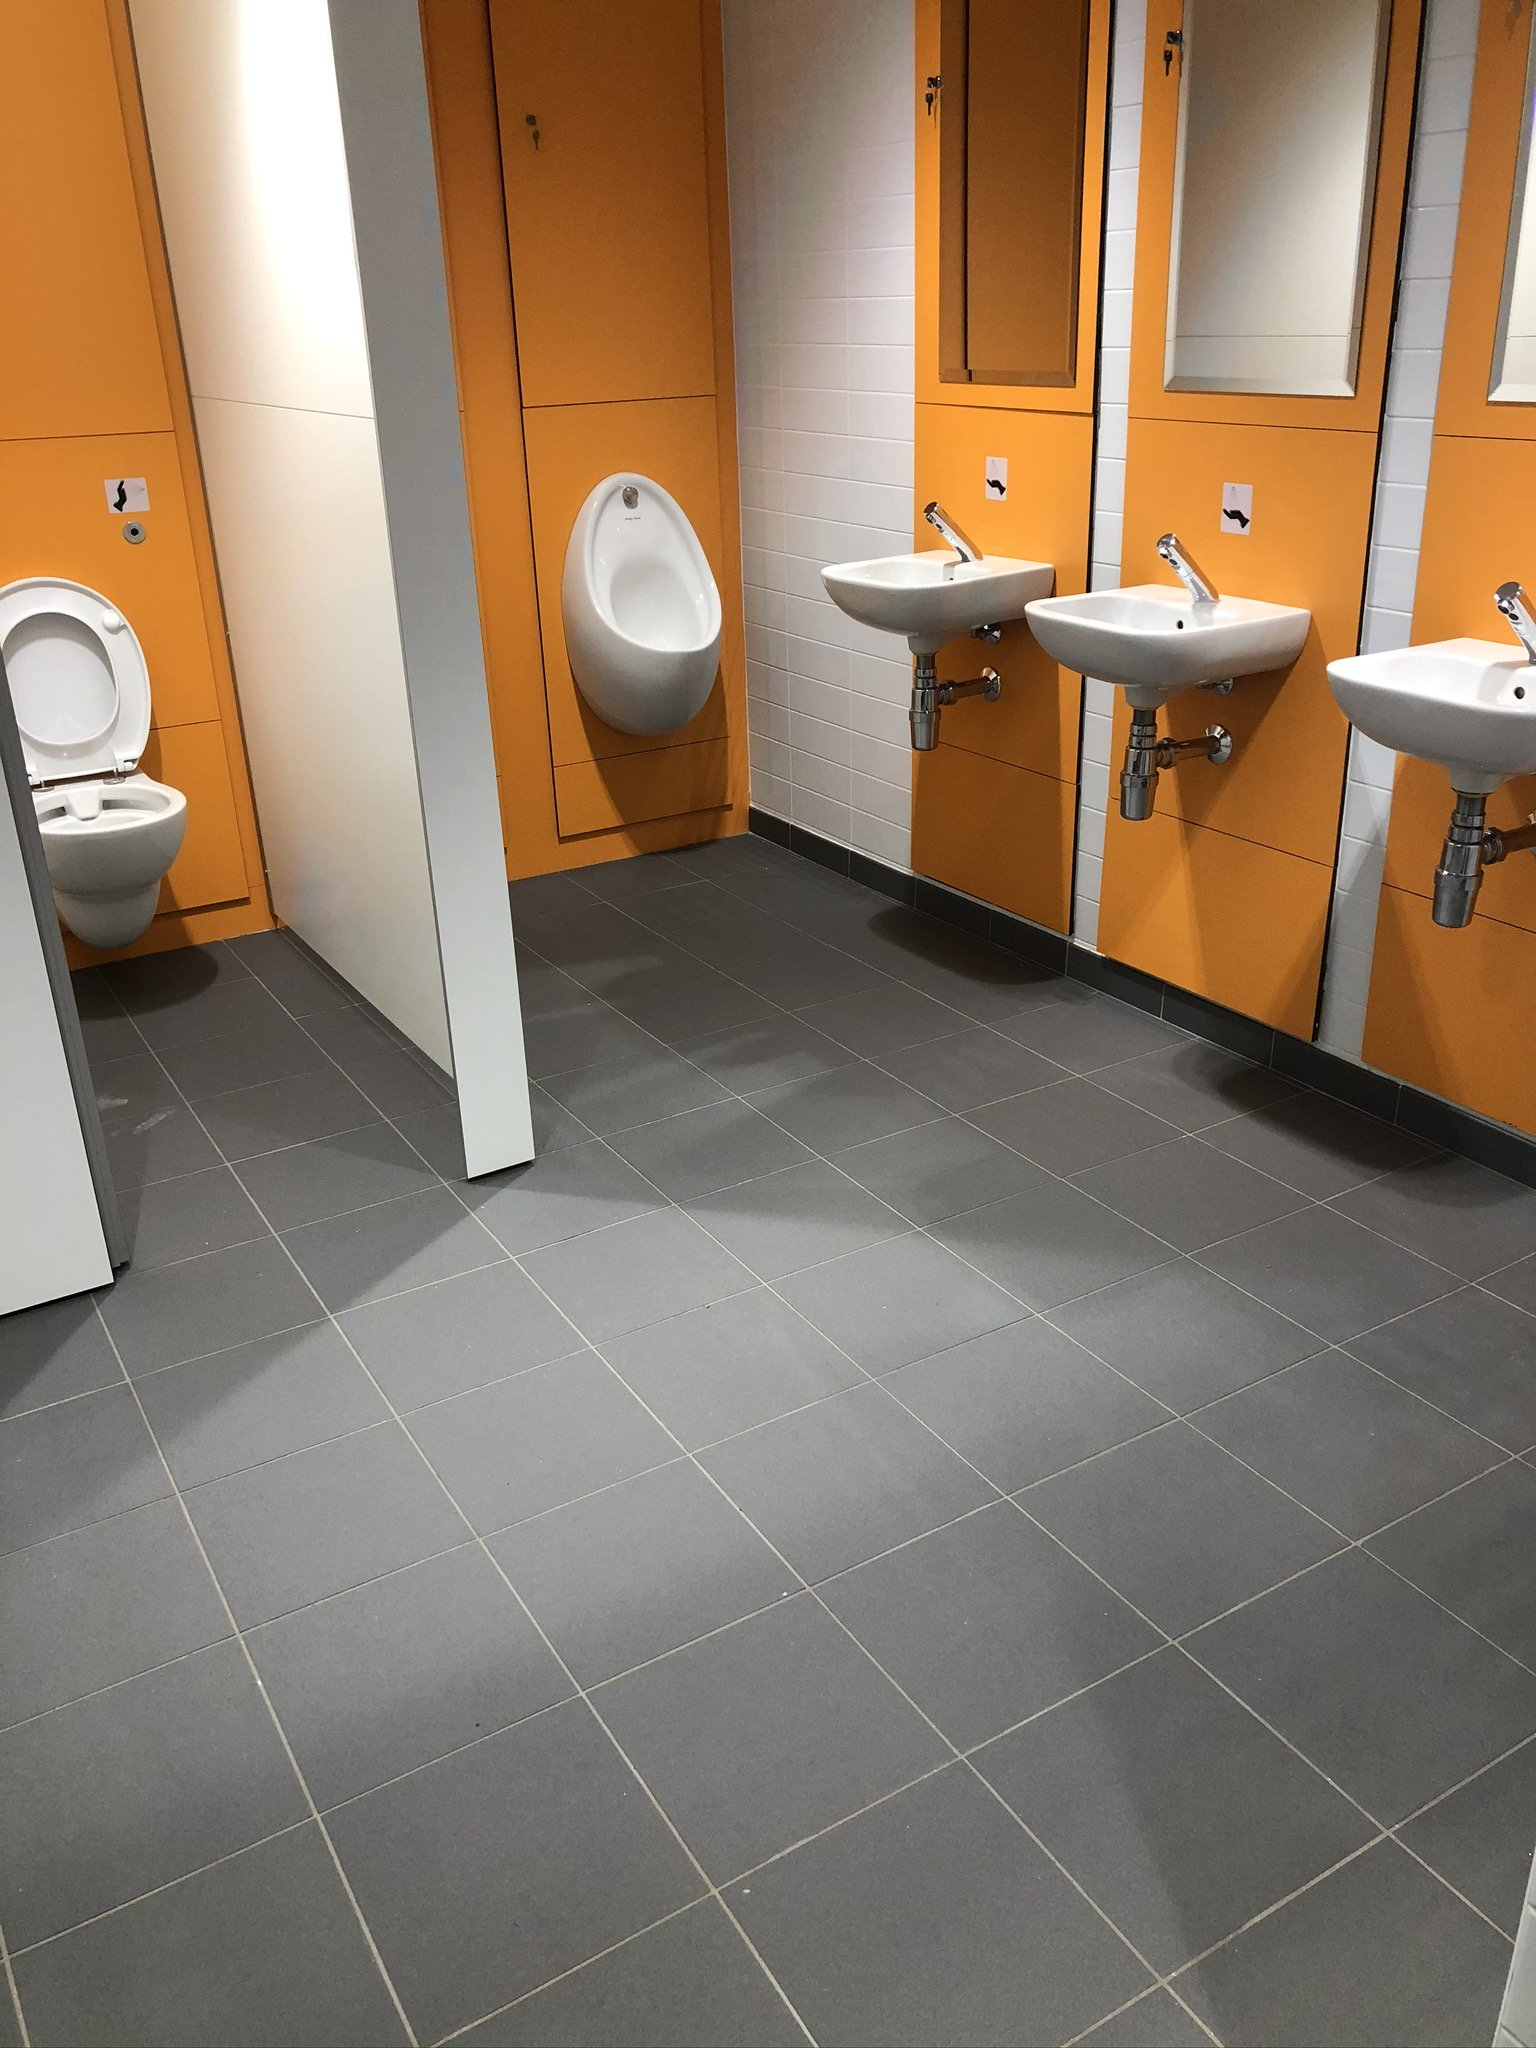 Reliable washroom services